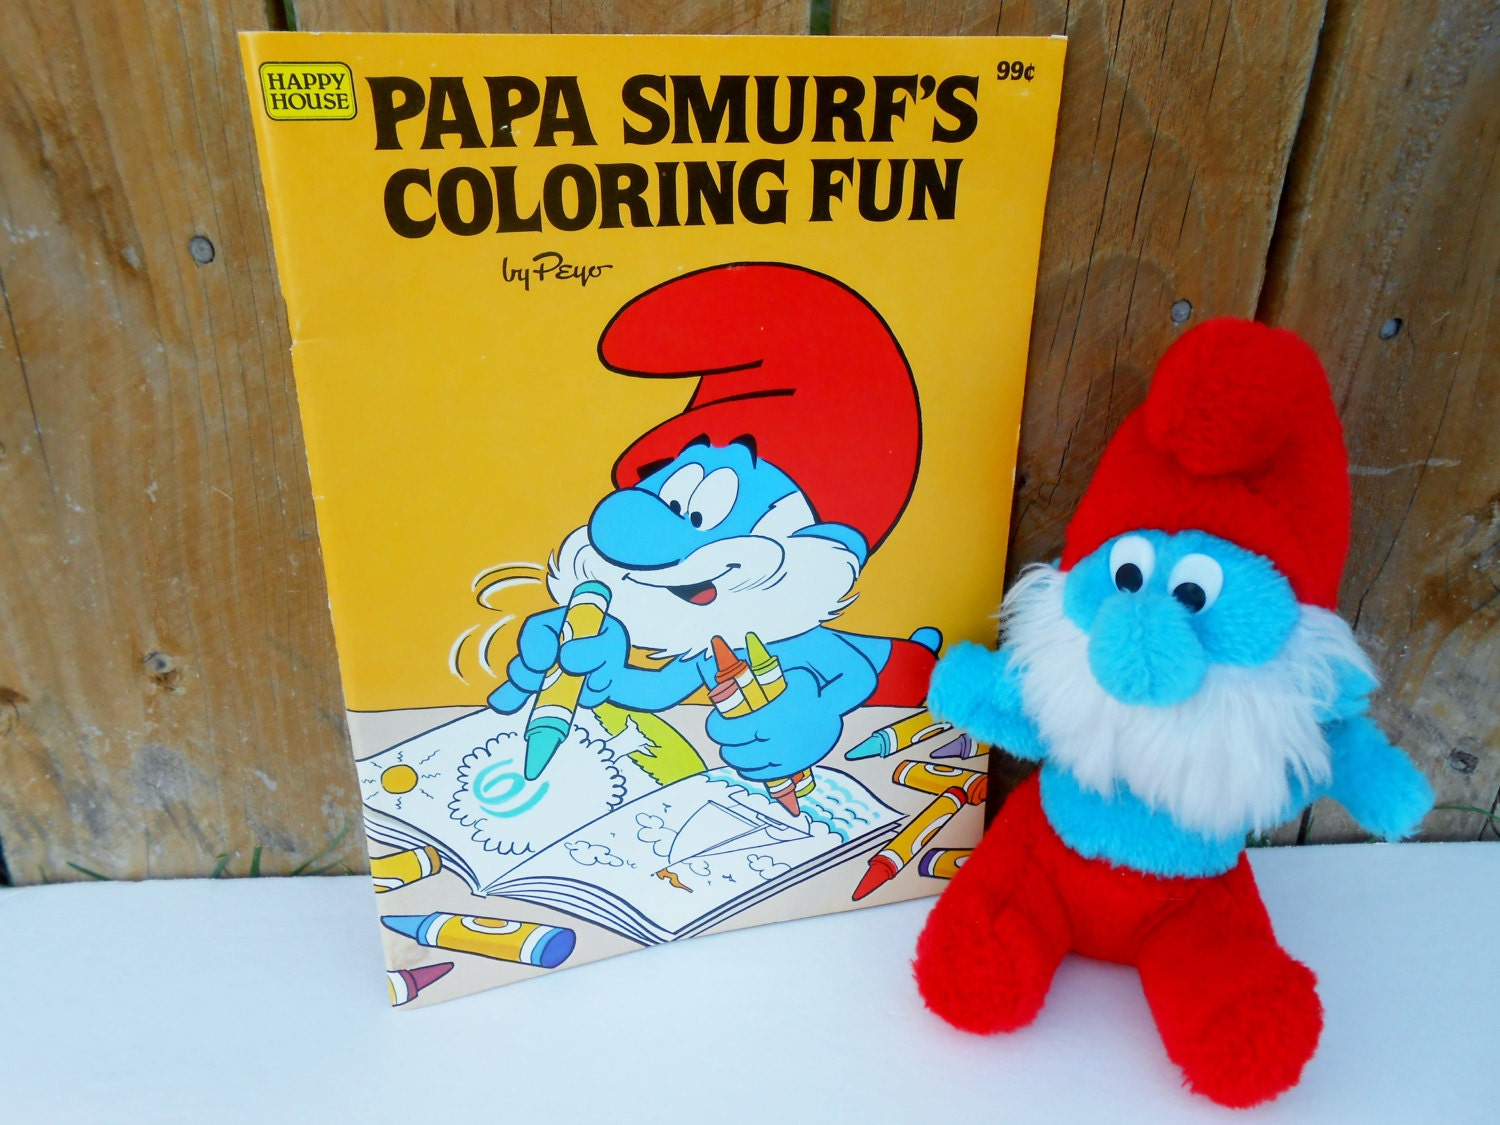 Vintage Papa Smurf plush 1981 with Smurf coloring book by